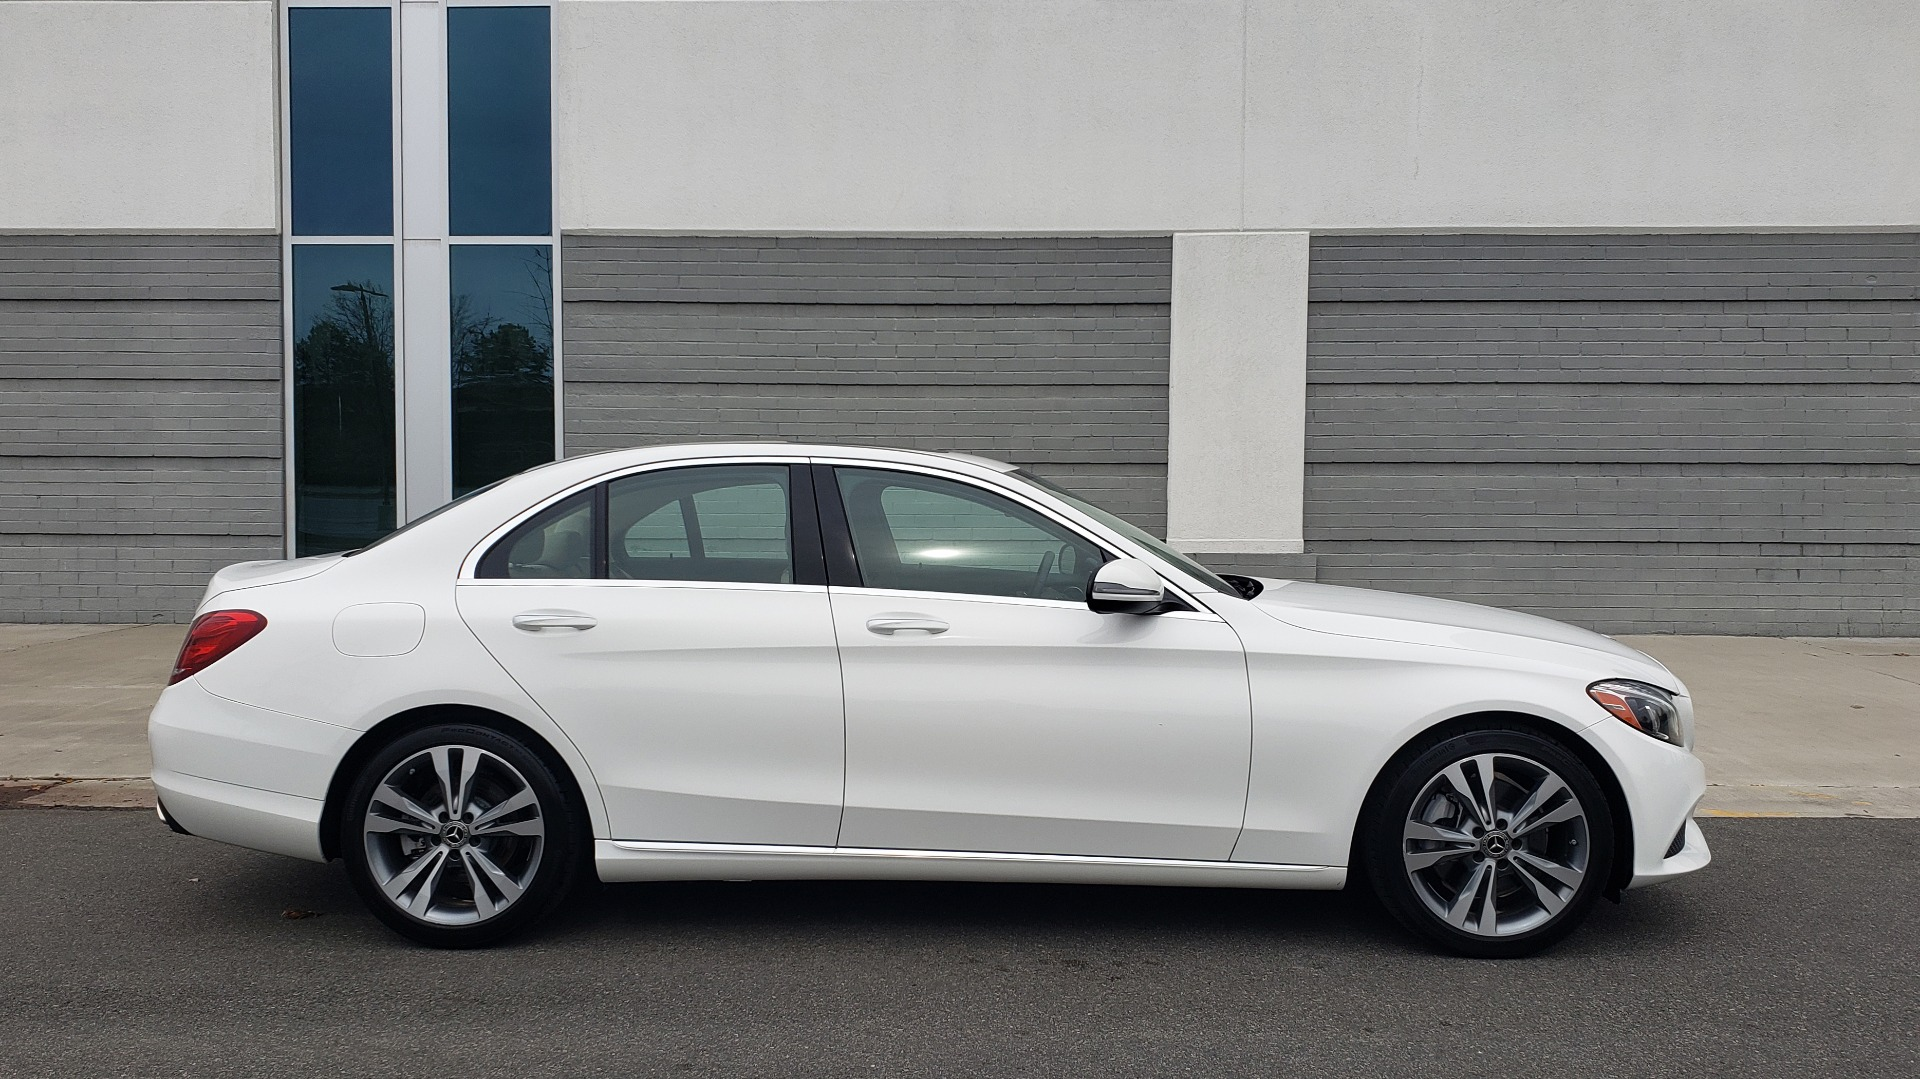 Used 2018 Mercedes-Benz C-CLASS C 300 PREMIUM / NAV / HTD STS / APPLE CARPLAY / REARVIEW for sale Sold at Formula Imports in Charlotte NC 28227 6